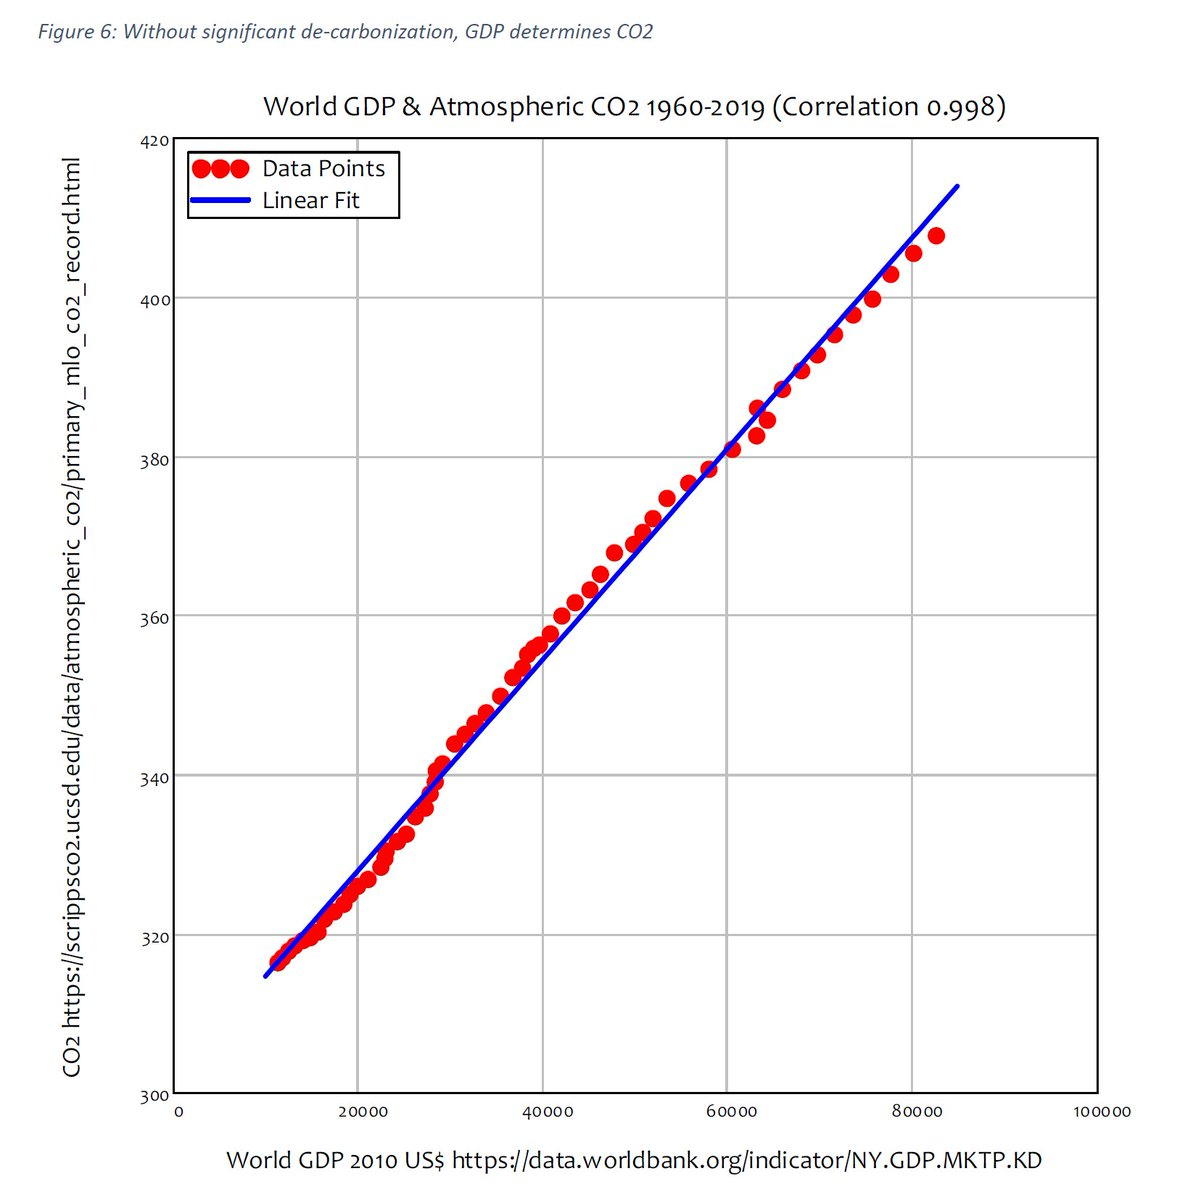 29/44 And since the overwhelming majority of the used energy is fossil fuel-based (85%), GDP also highly correlates with CO2 emissions (correlation 0.998).